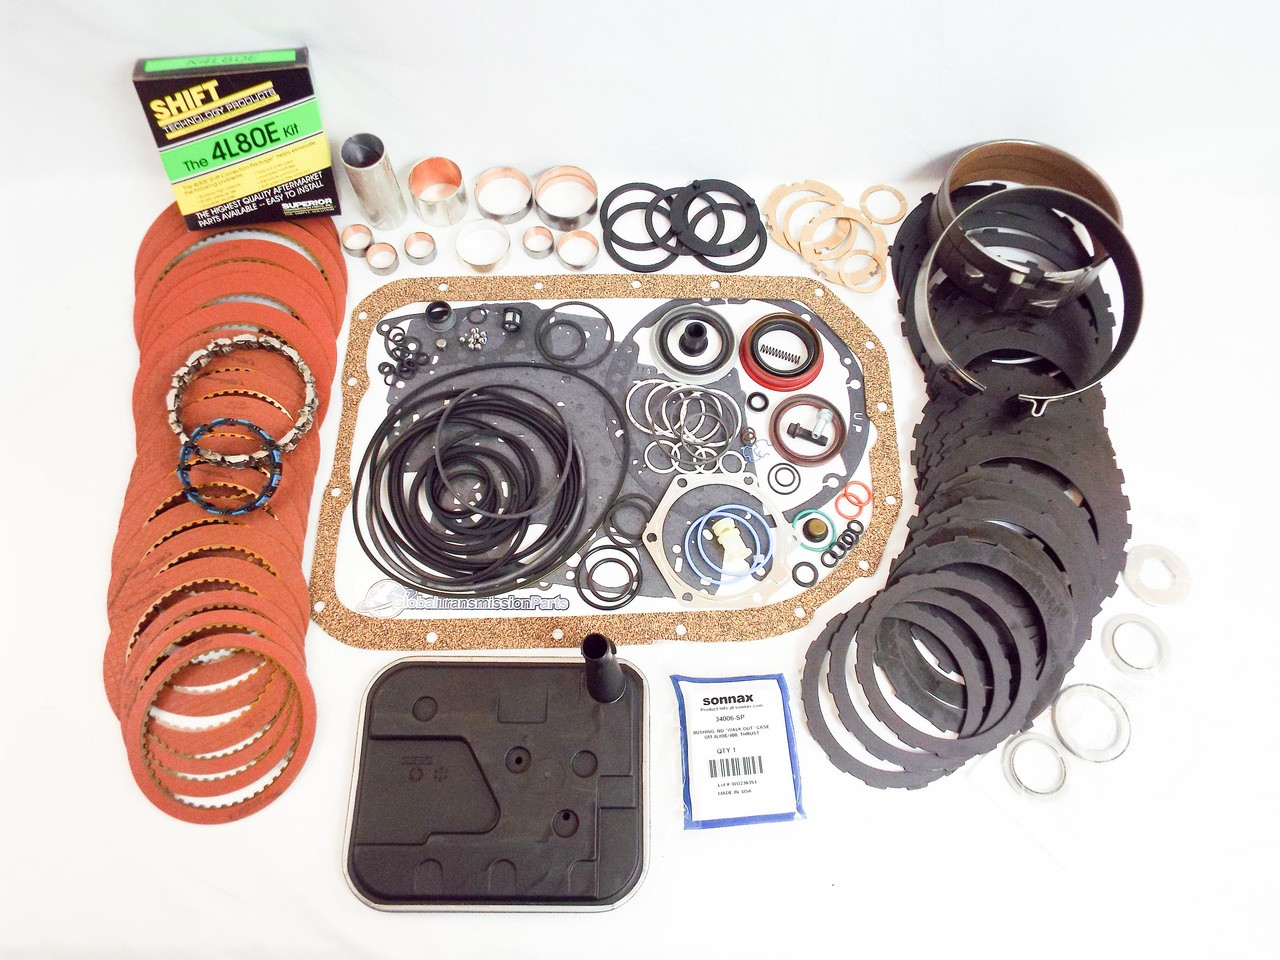 4l80e loaded super master rebuild kit with tons of upgrades